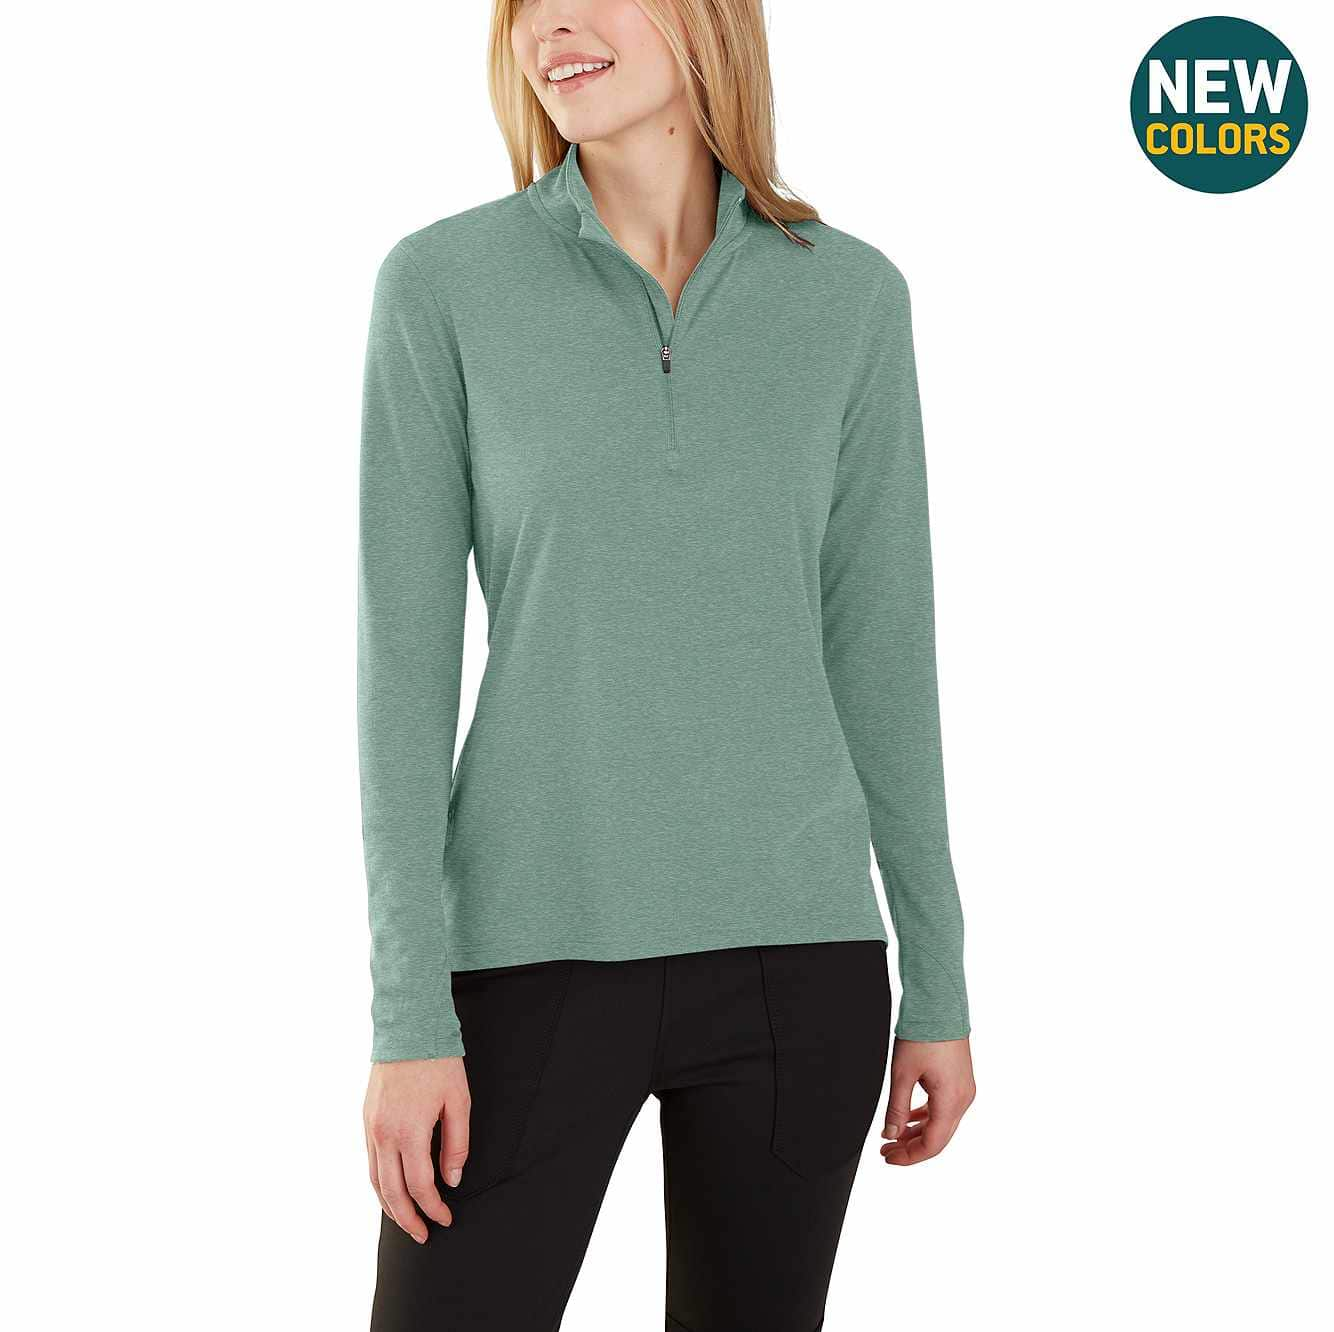 Picture of Carhartt Force® Delmont Quarter-Zip Shirt in Bay Green Heather